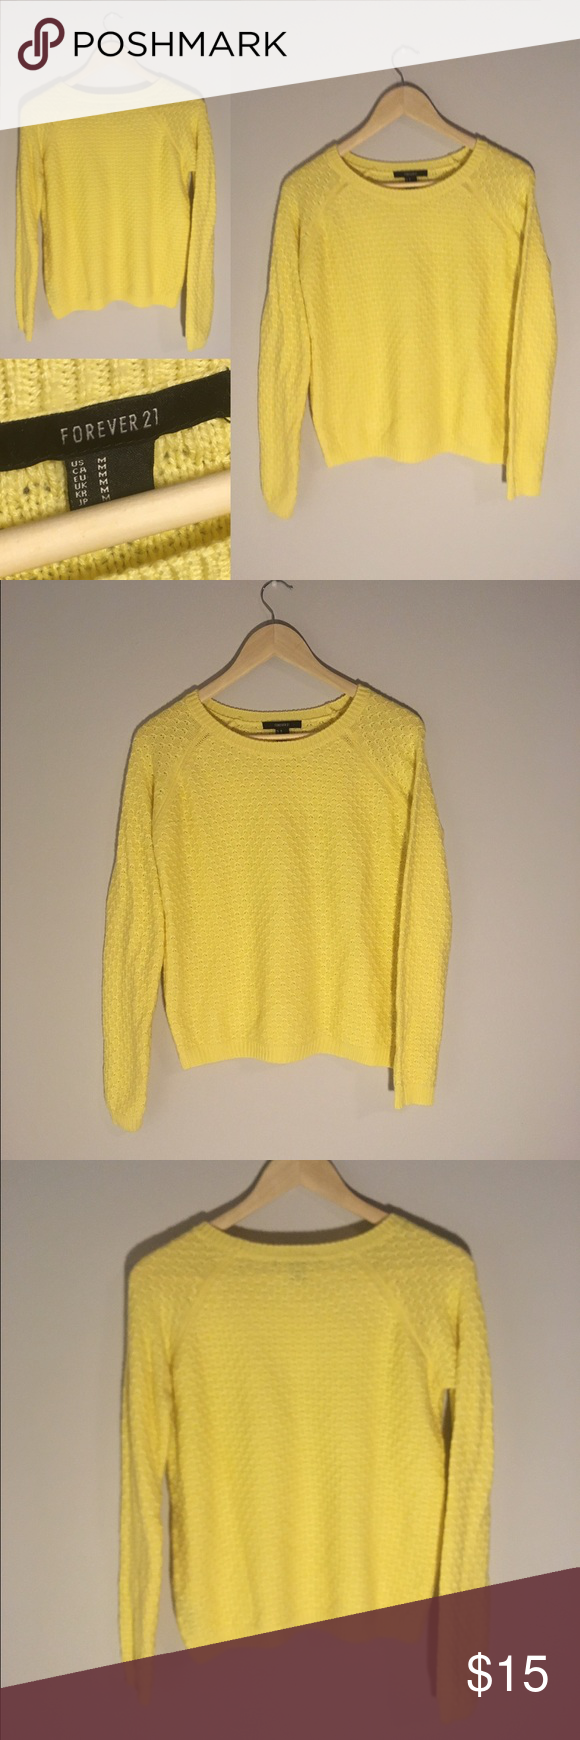 NWOT F21 Yellow Knit Sweater This cozy yellow knit sweater from Forever21 has never been worn! It would go perfectly with a statement necklace and your favorite skinny jeans. Women's Size M. Feel free to ask any questions! 😁 Forever 21 Sweaters Crew & Scoop Necks